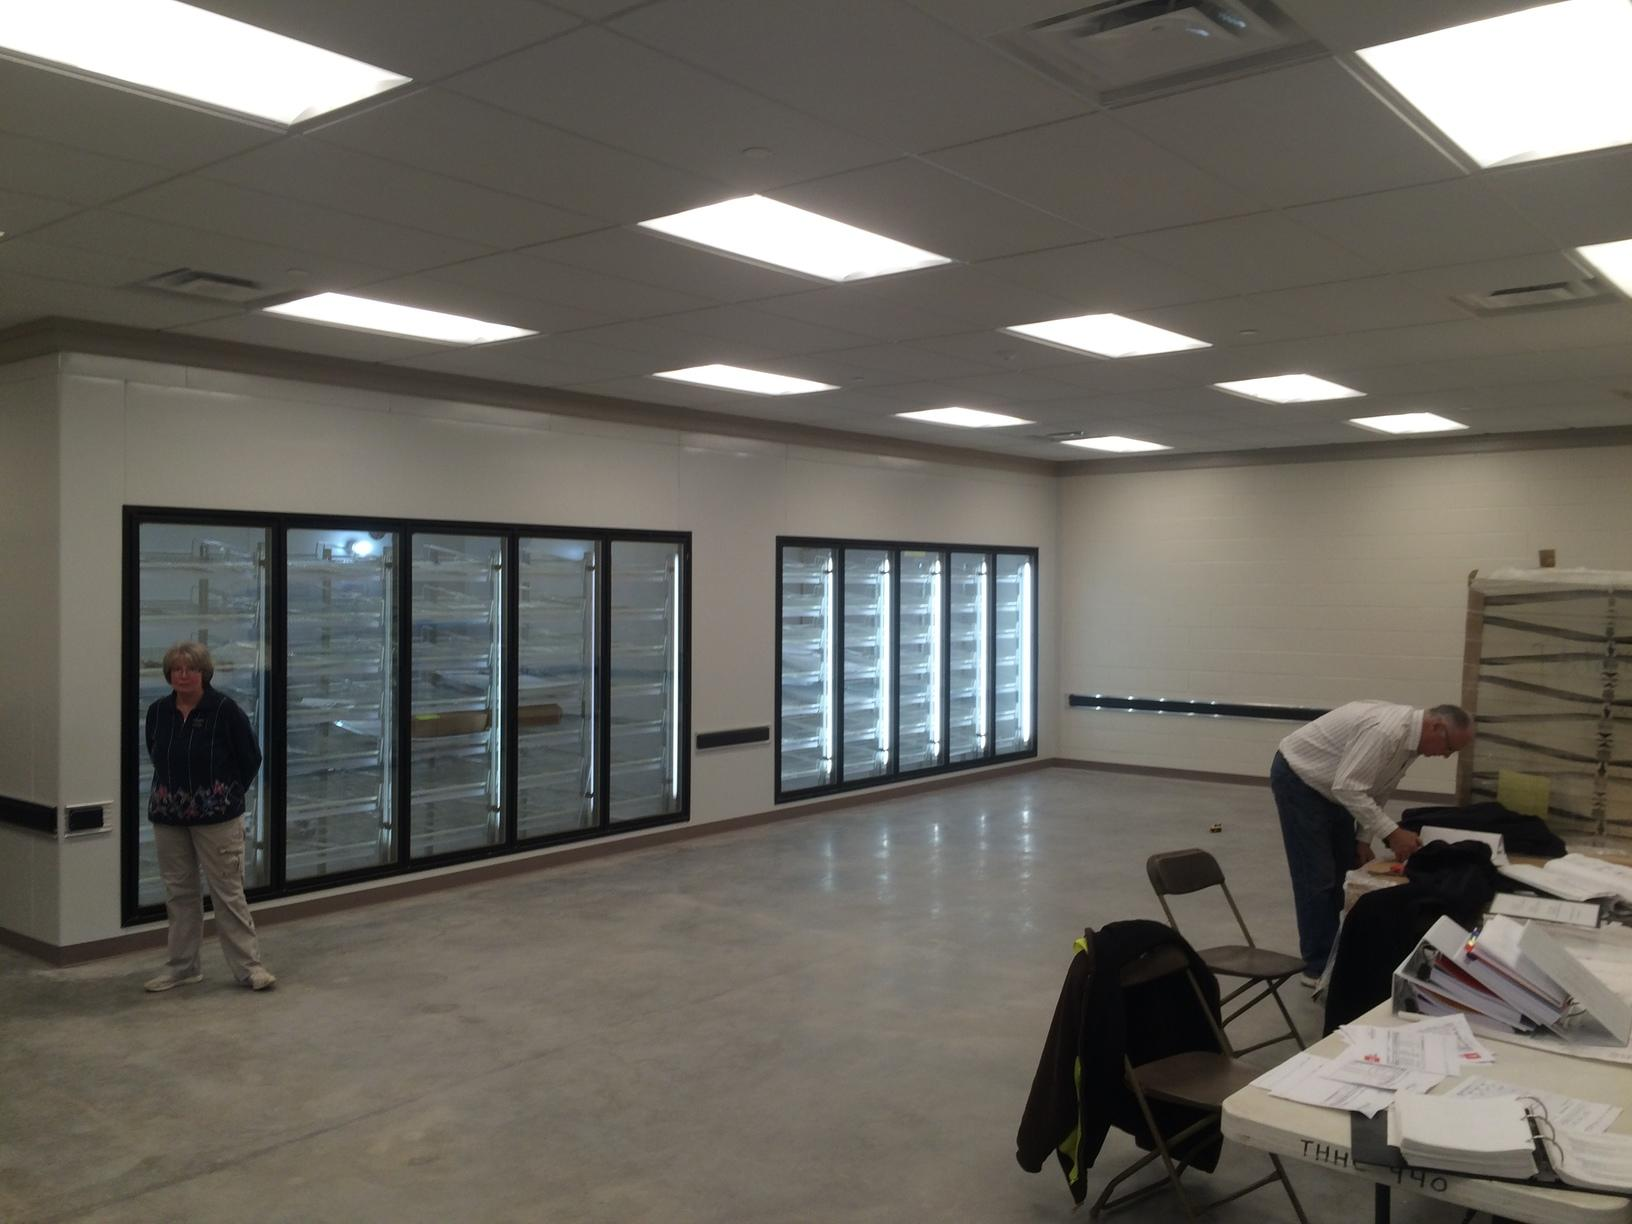 Freezers and coolers installed for perishable items